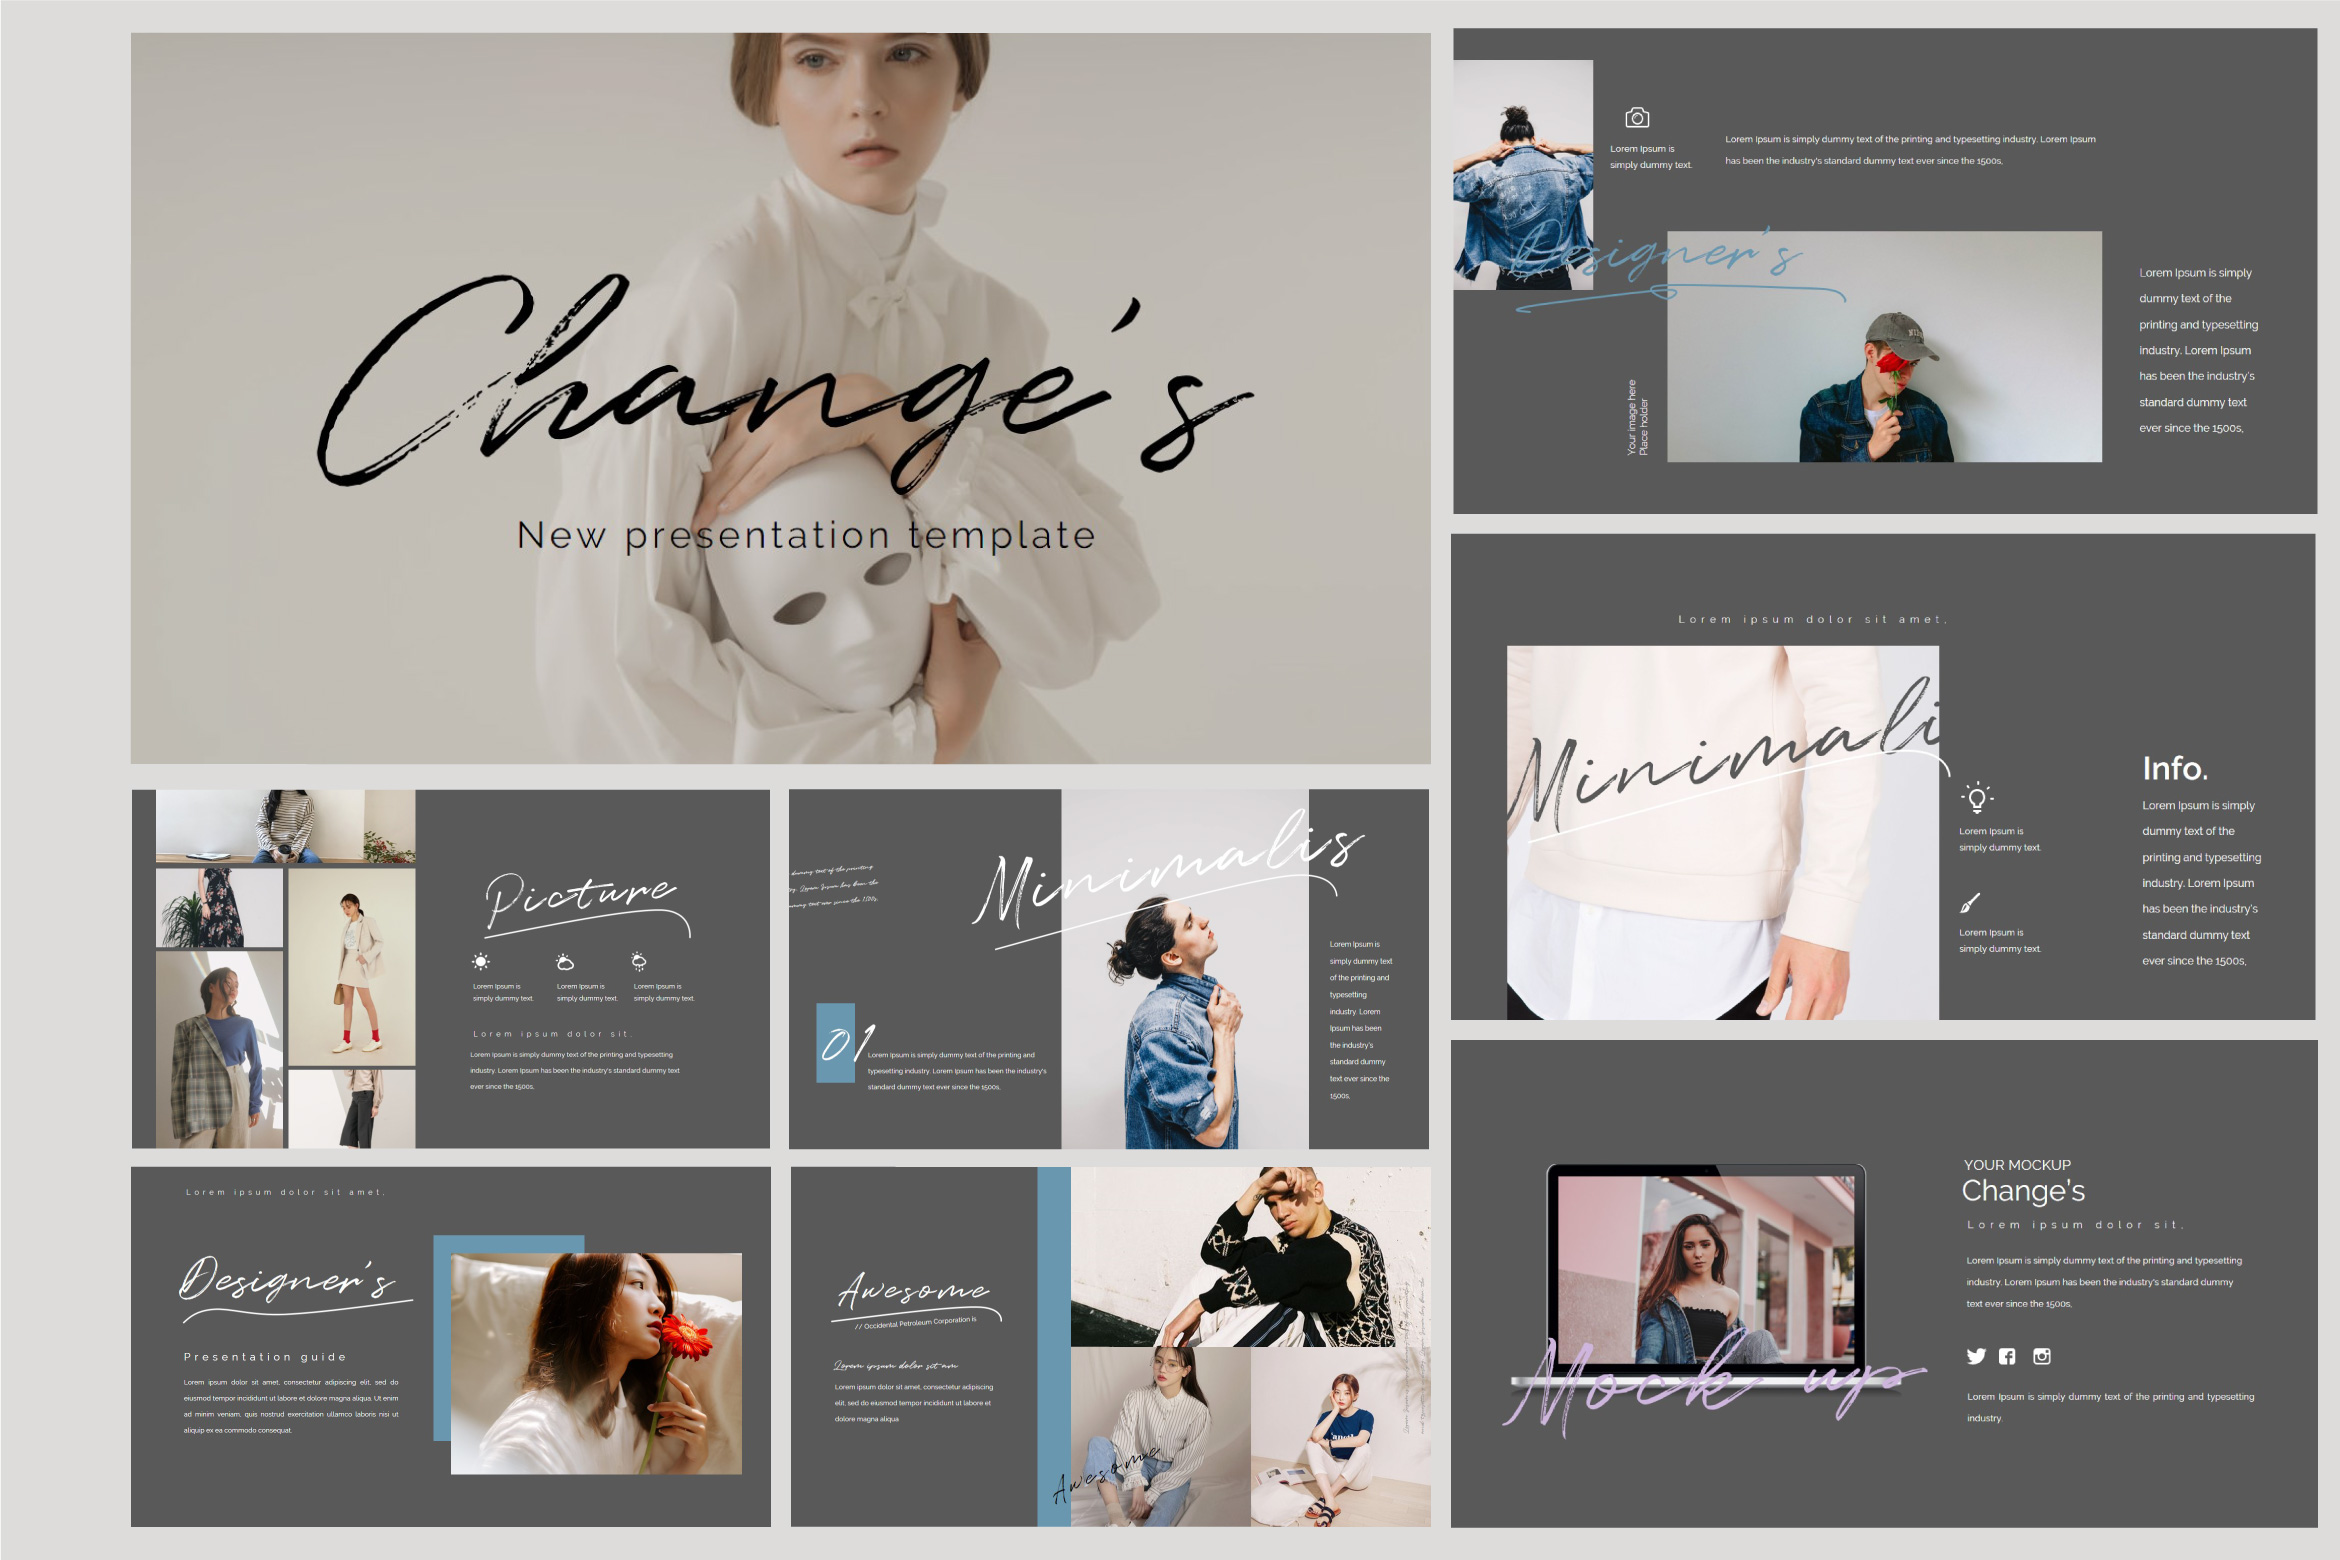 Change's - Fashion Google Slides Dark example image 2